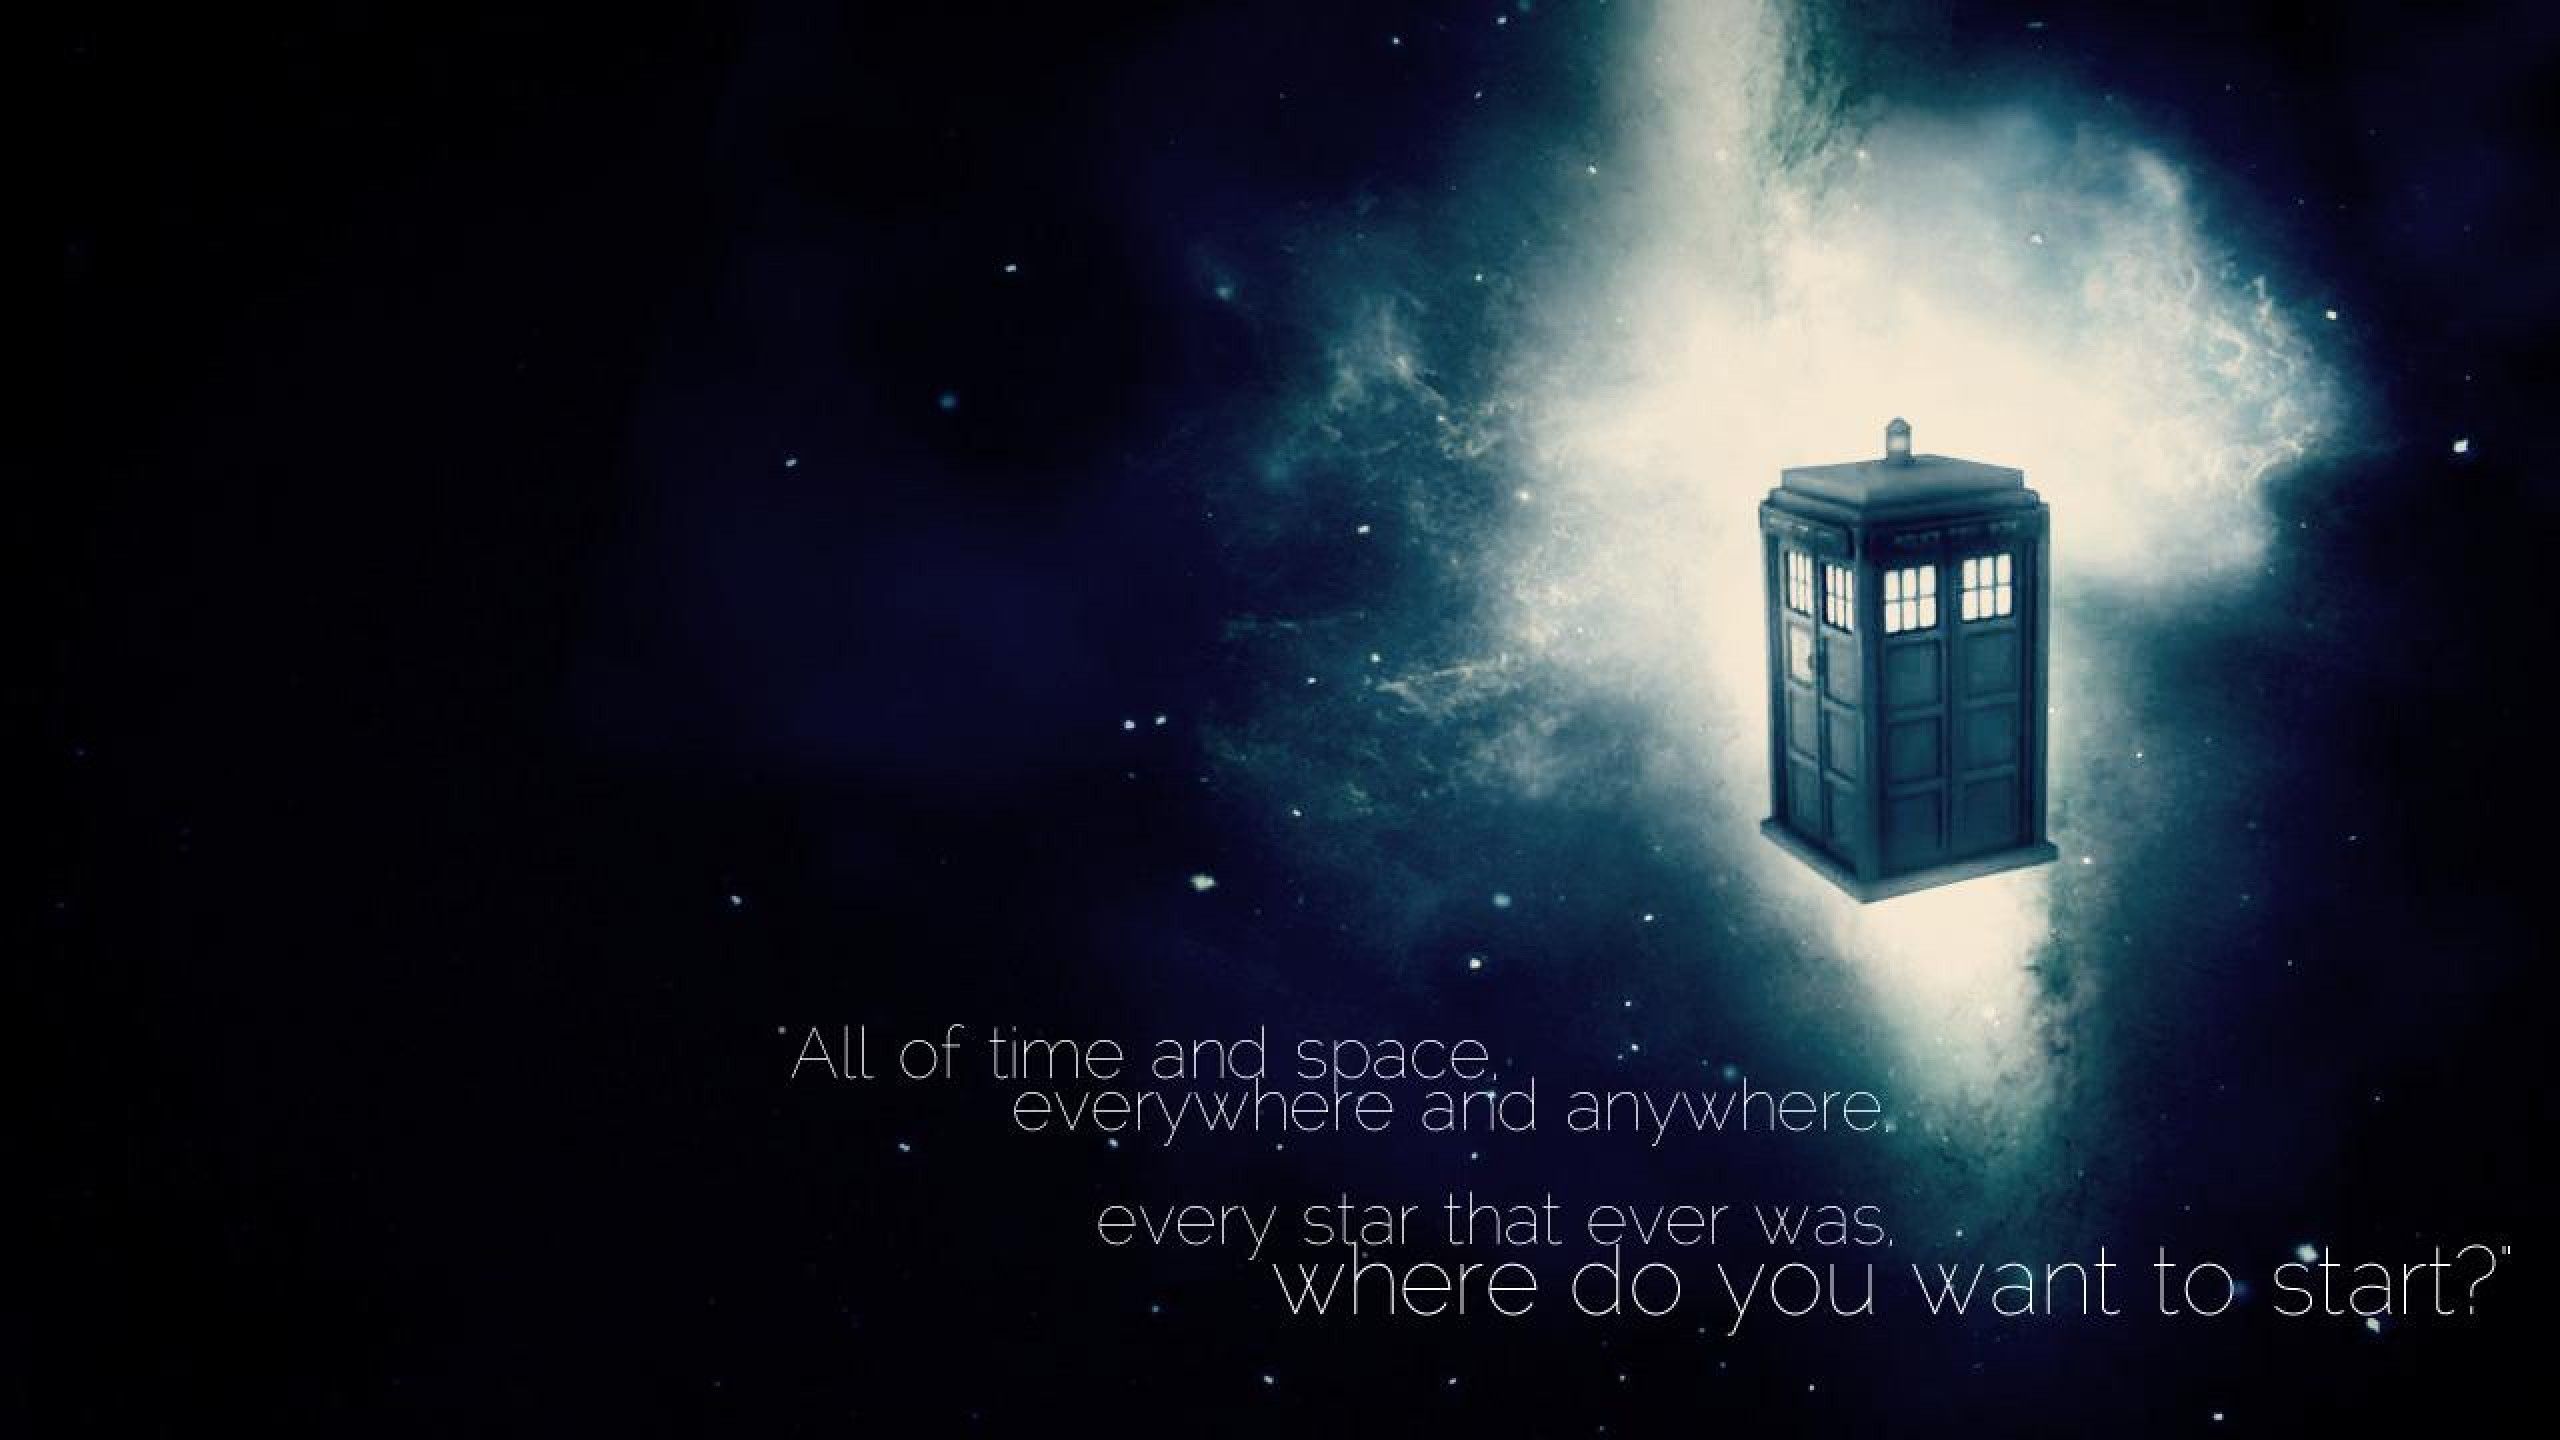 doctor who wallpapers | top hdq doctor who images, wallpapers - fine